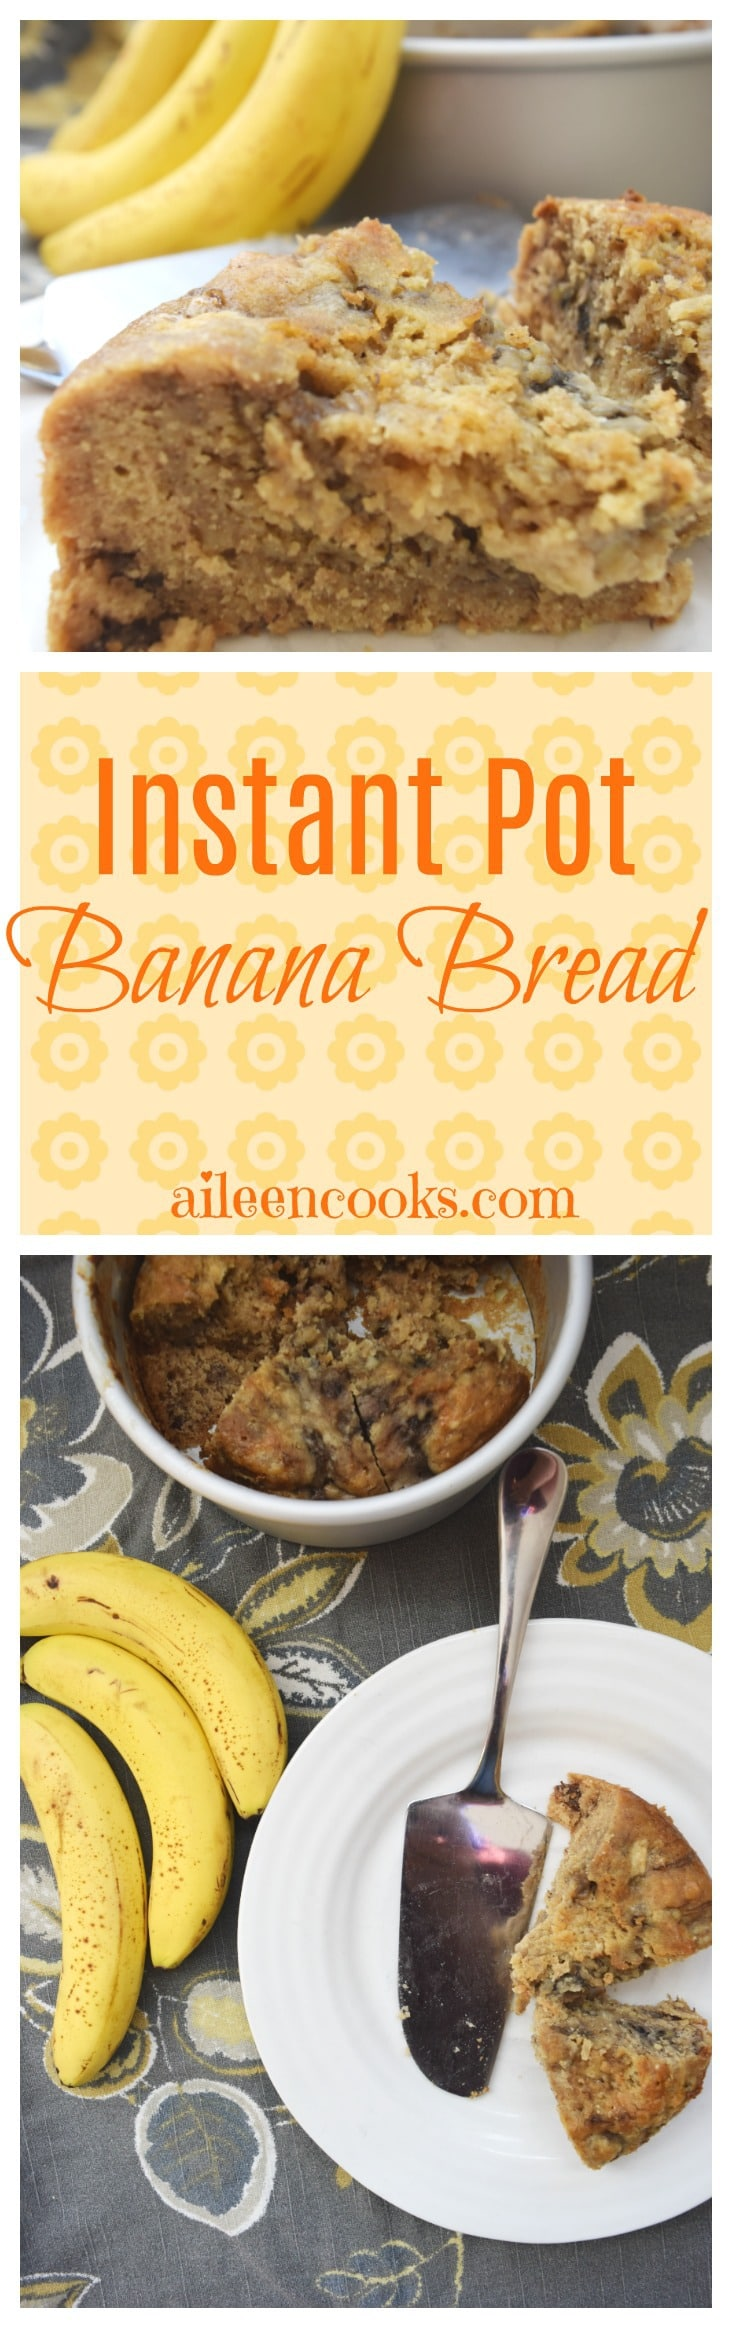 Yes you can make banana bread in your Instant Pot! Learn how with this step-by-step tutorial.